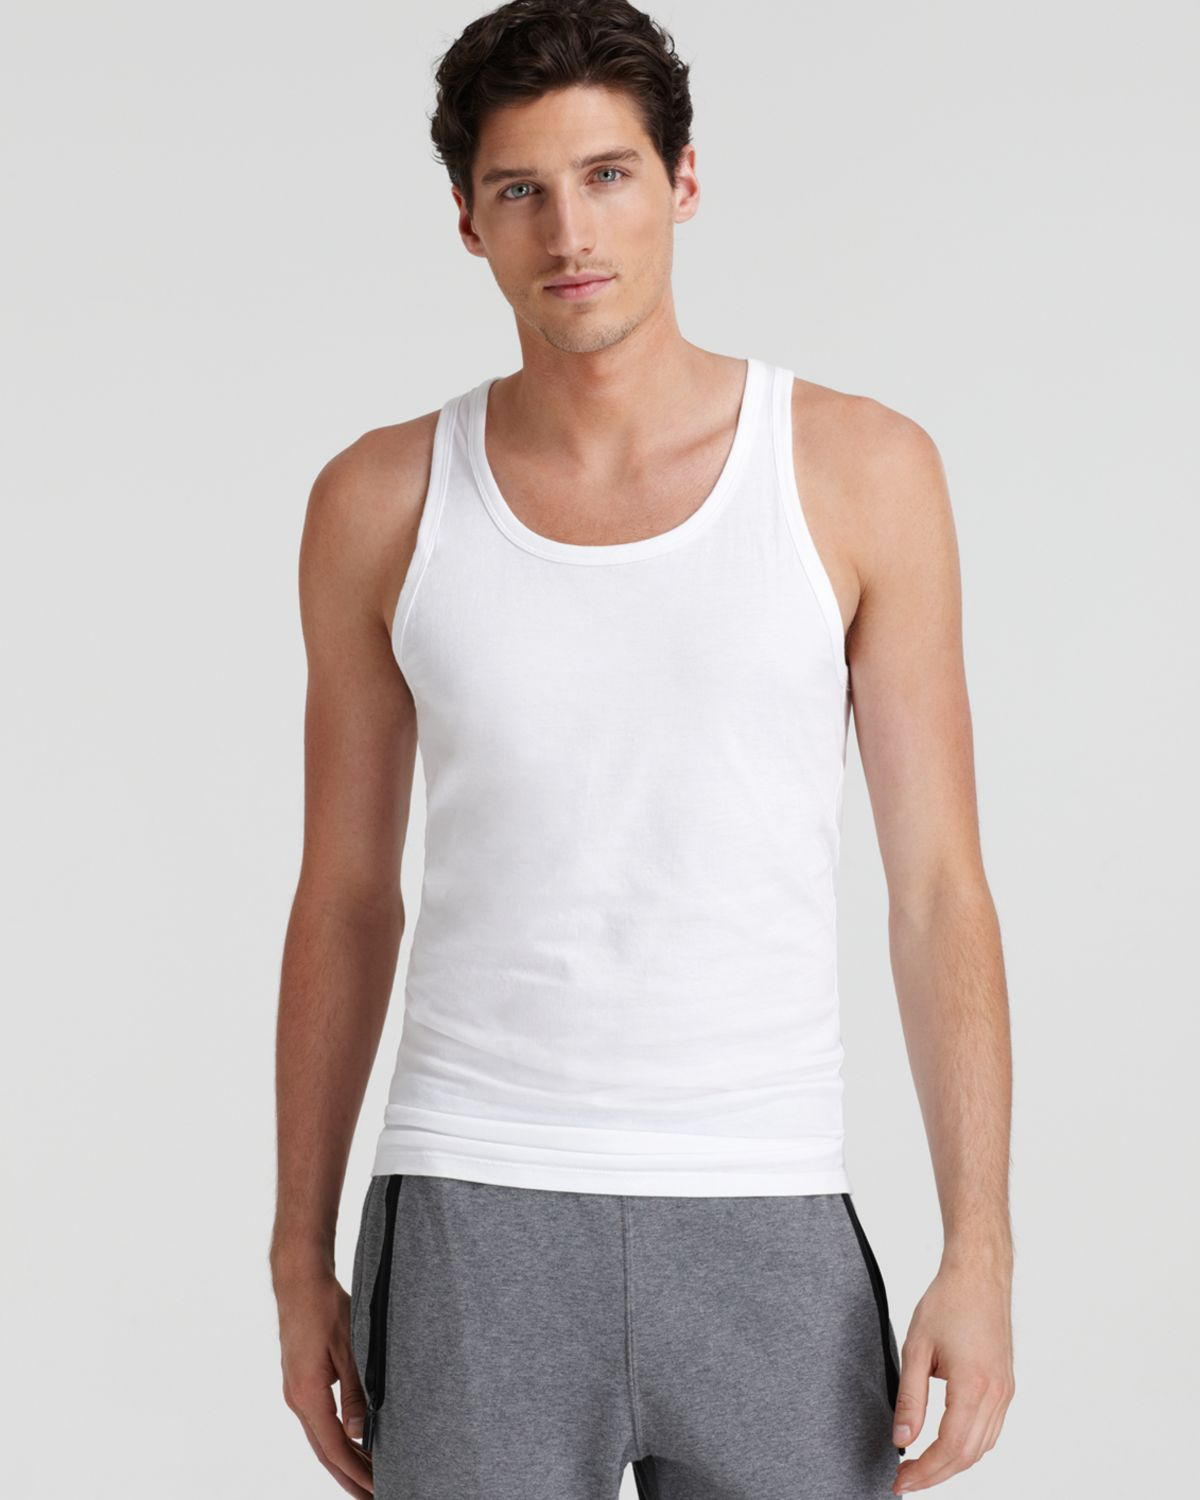 INSTANT SLIM-HOTER Slim Vest is the new generation body shaper for men. Shaping your chest, waist and stomach, it is designed for men and women. And it is specifically designed to reduce the appearance of Gynecomastia or